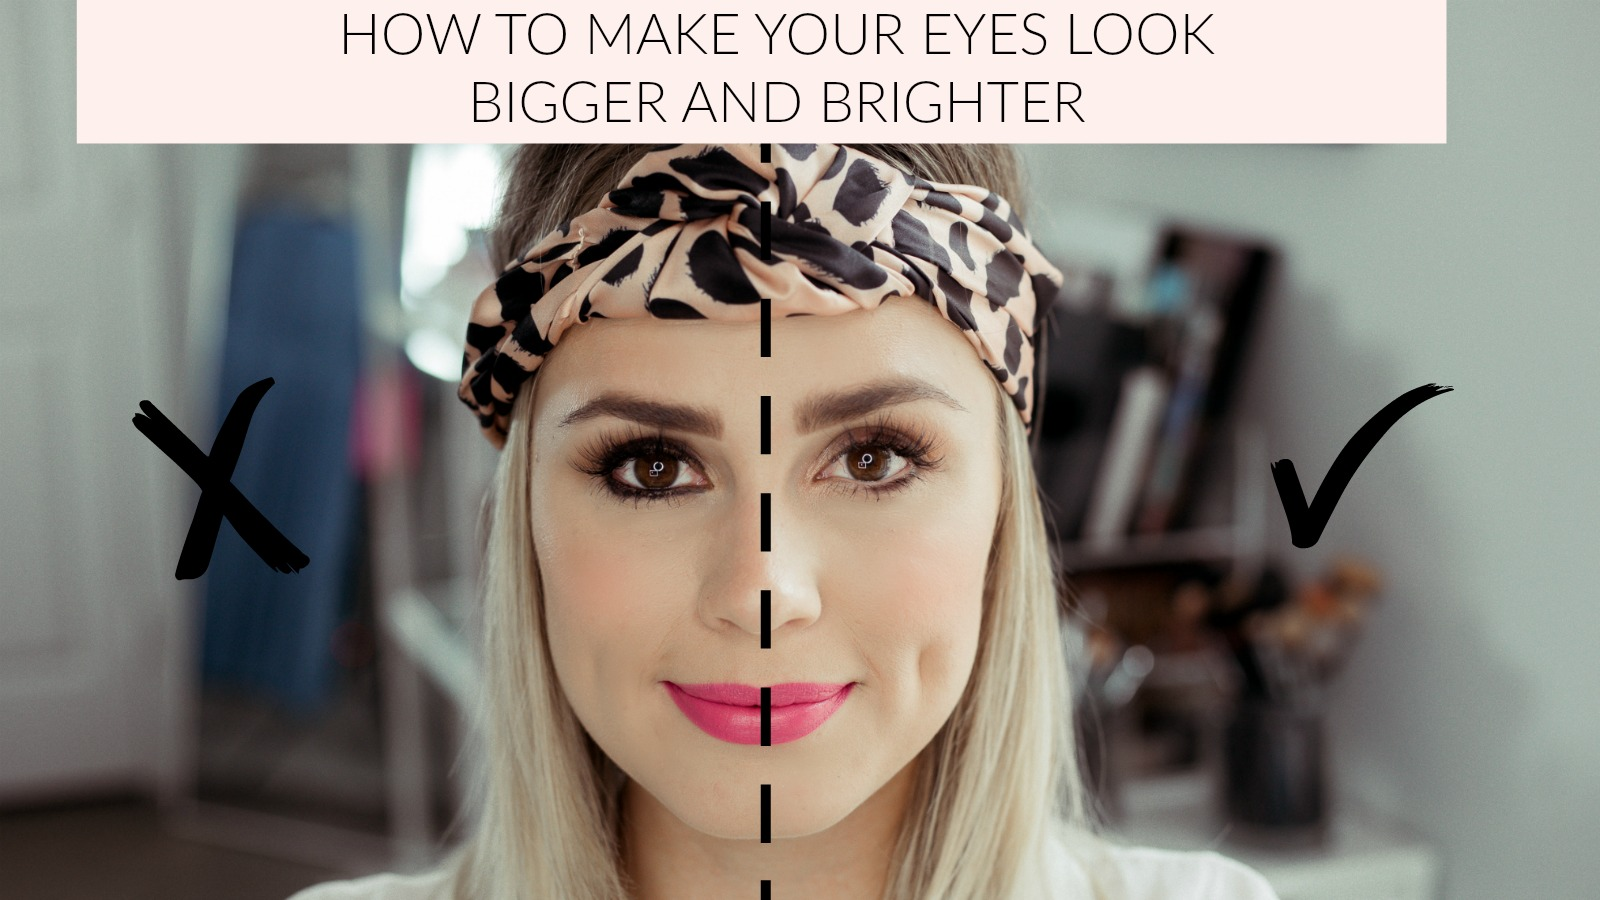 Houston beauty blogger Uptown with Elly Brown shares a few easy and simple tricks on How To Make Your Eyes Look Bigger and brighter. See more here!